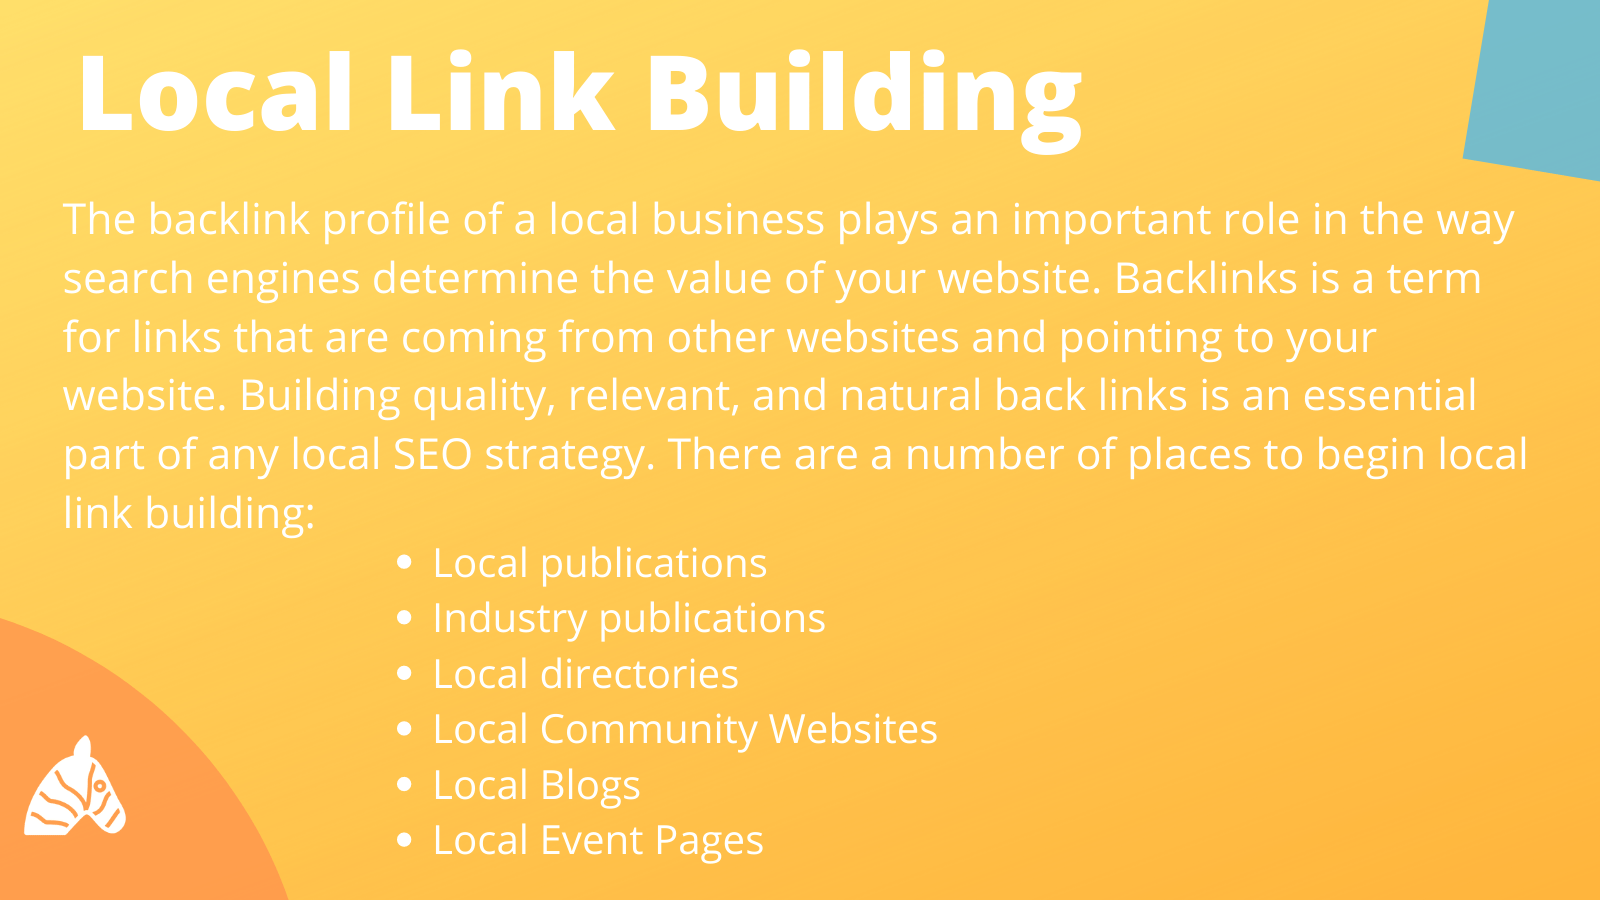 Why local link building is important in a local SEO campaign